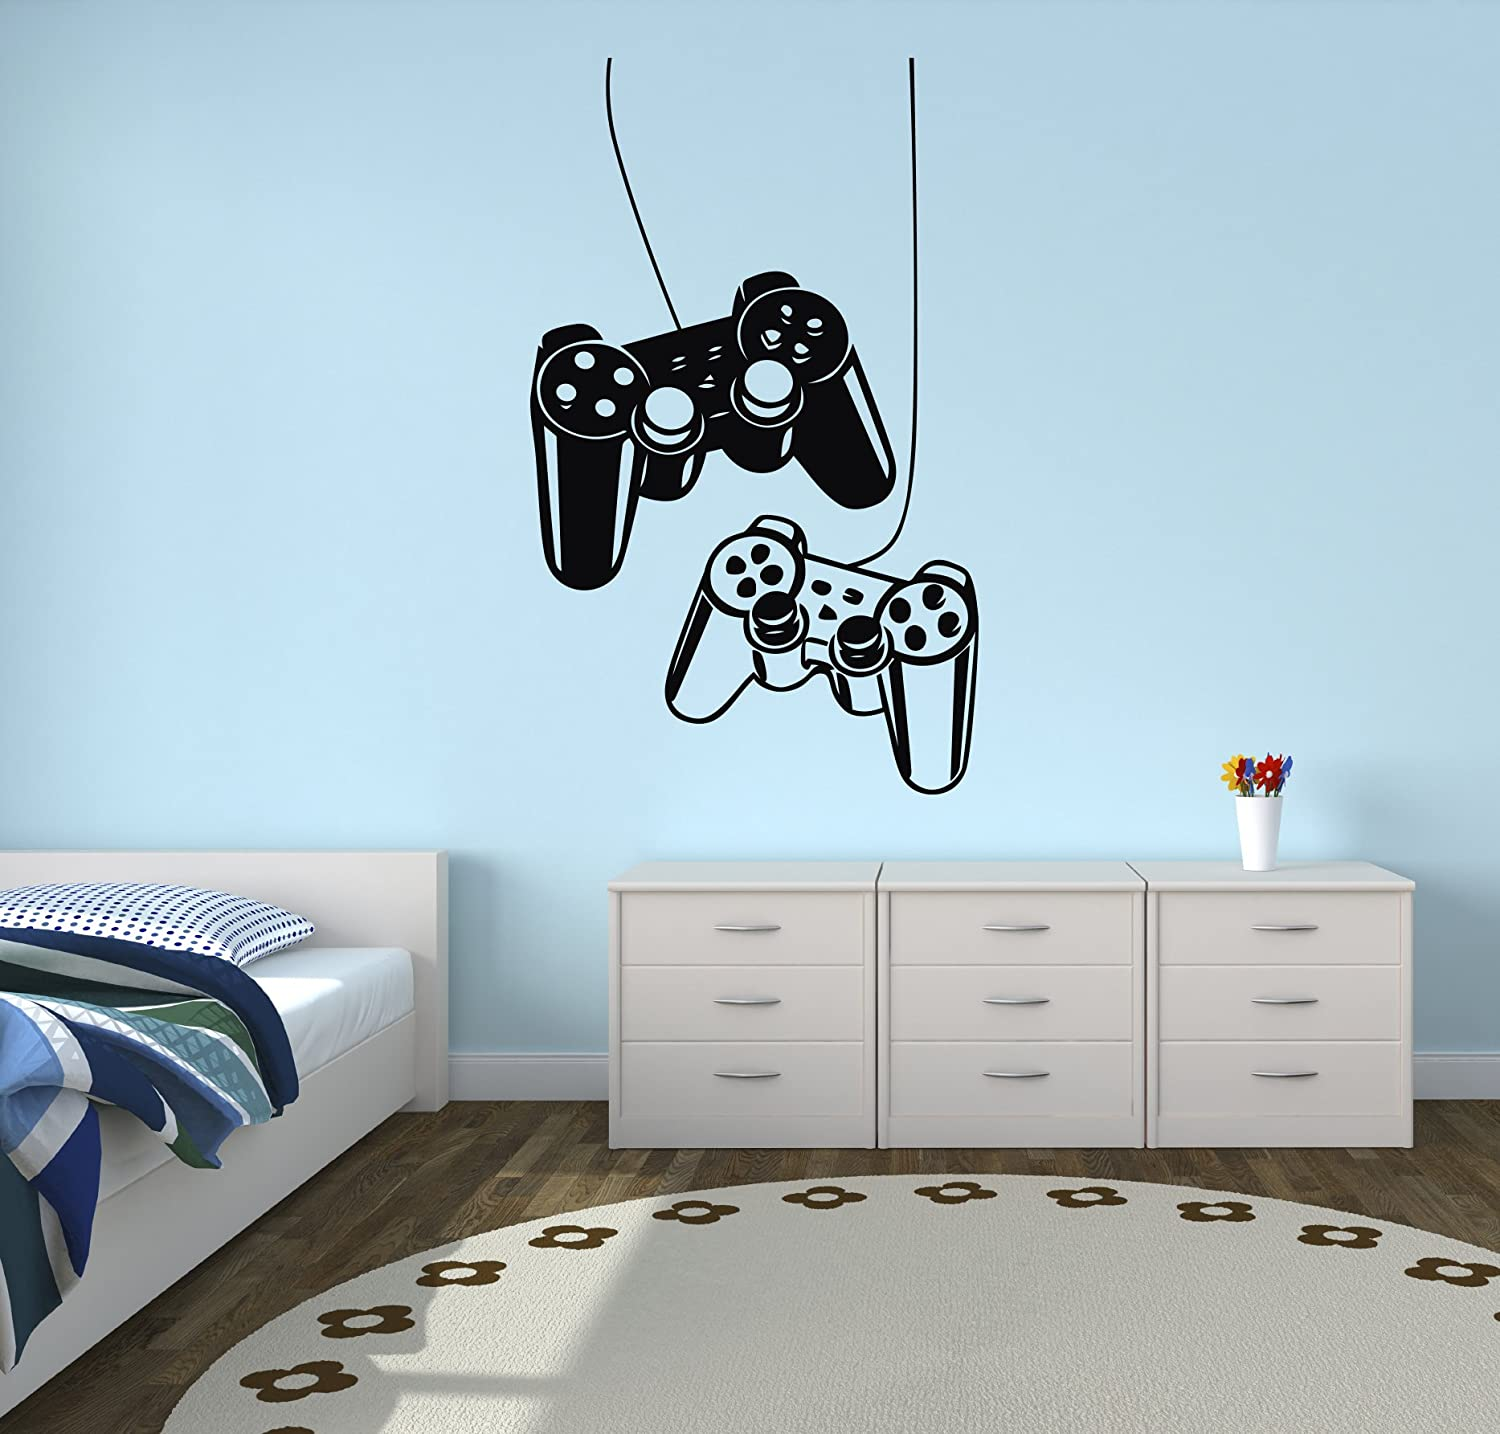 West Mountain Playstation Controllers Gaming Joystick Wall Decal Home Decor Art Vinyl Sticker